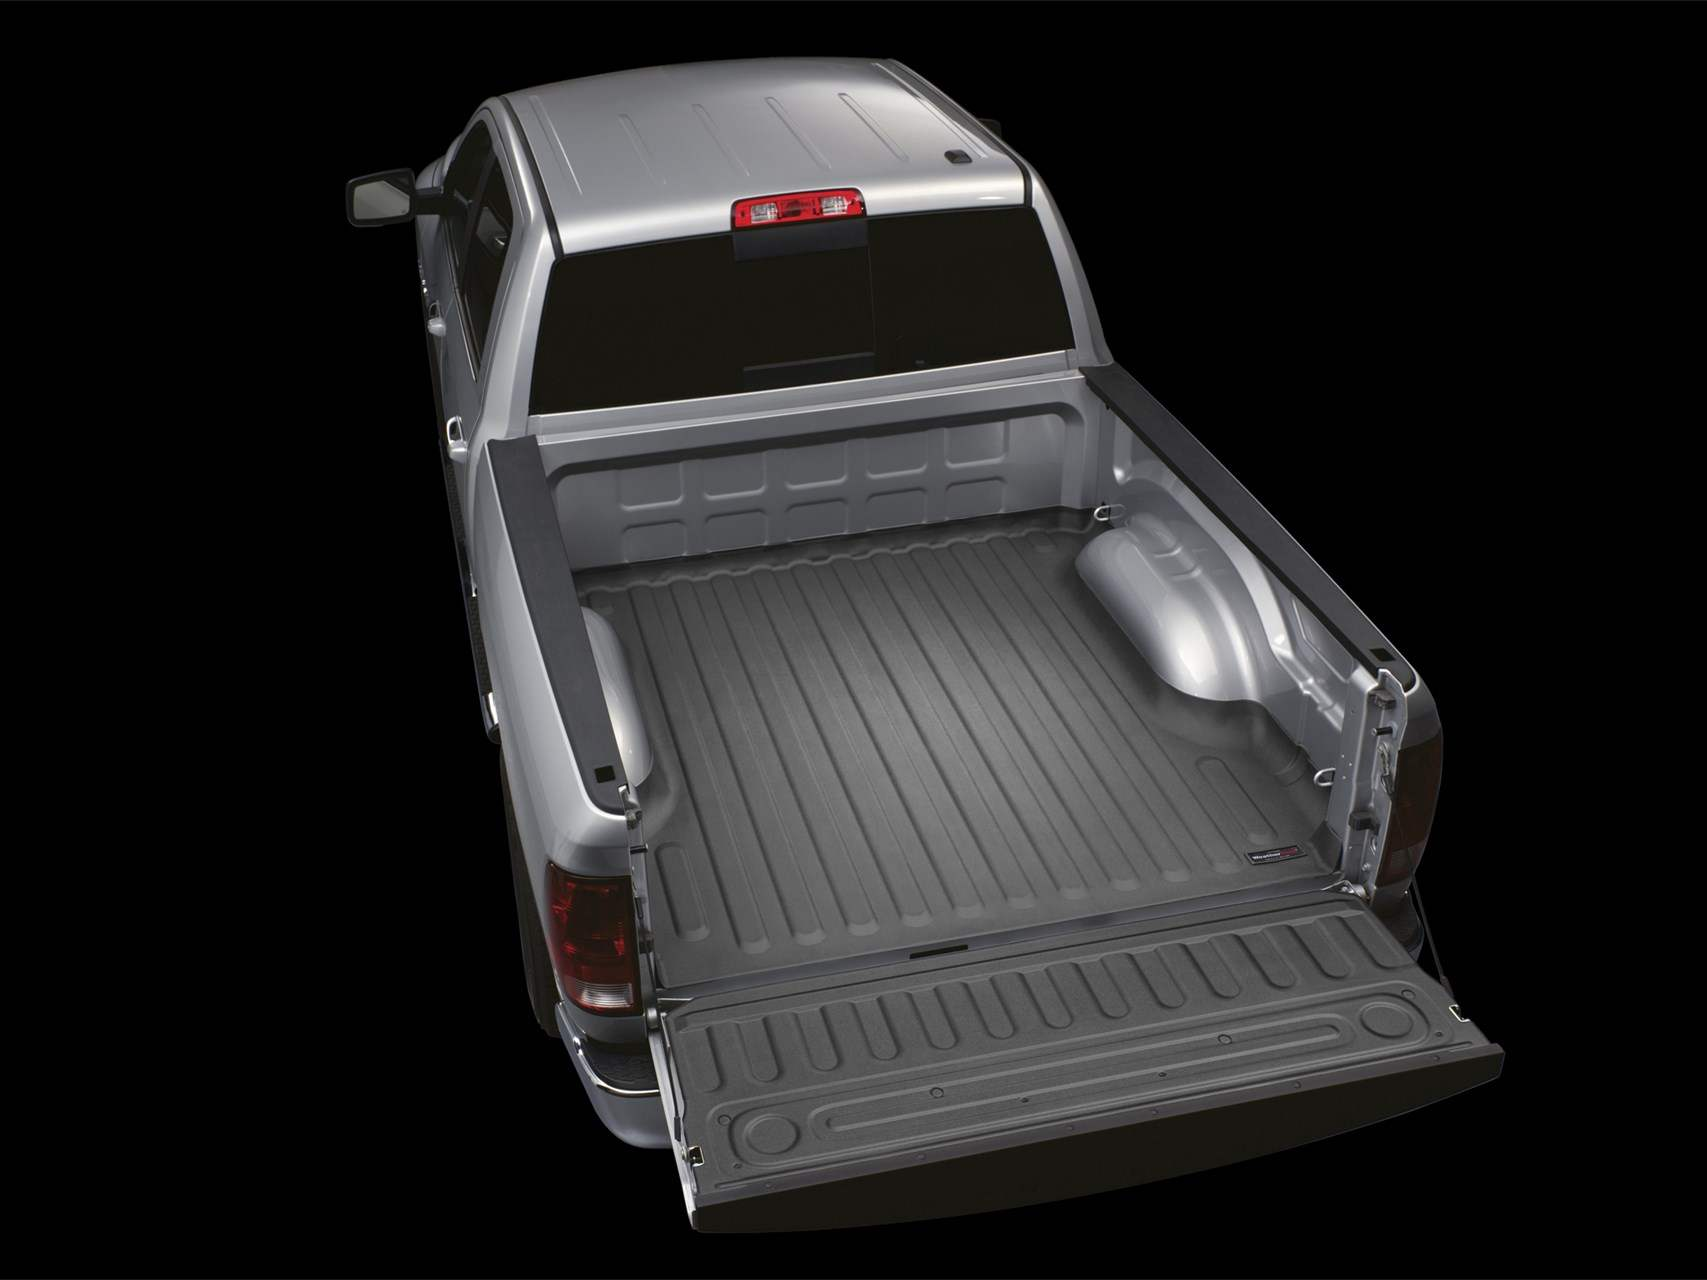 WeatherTech TechLiner Bed and Tailgate Protection